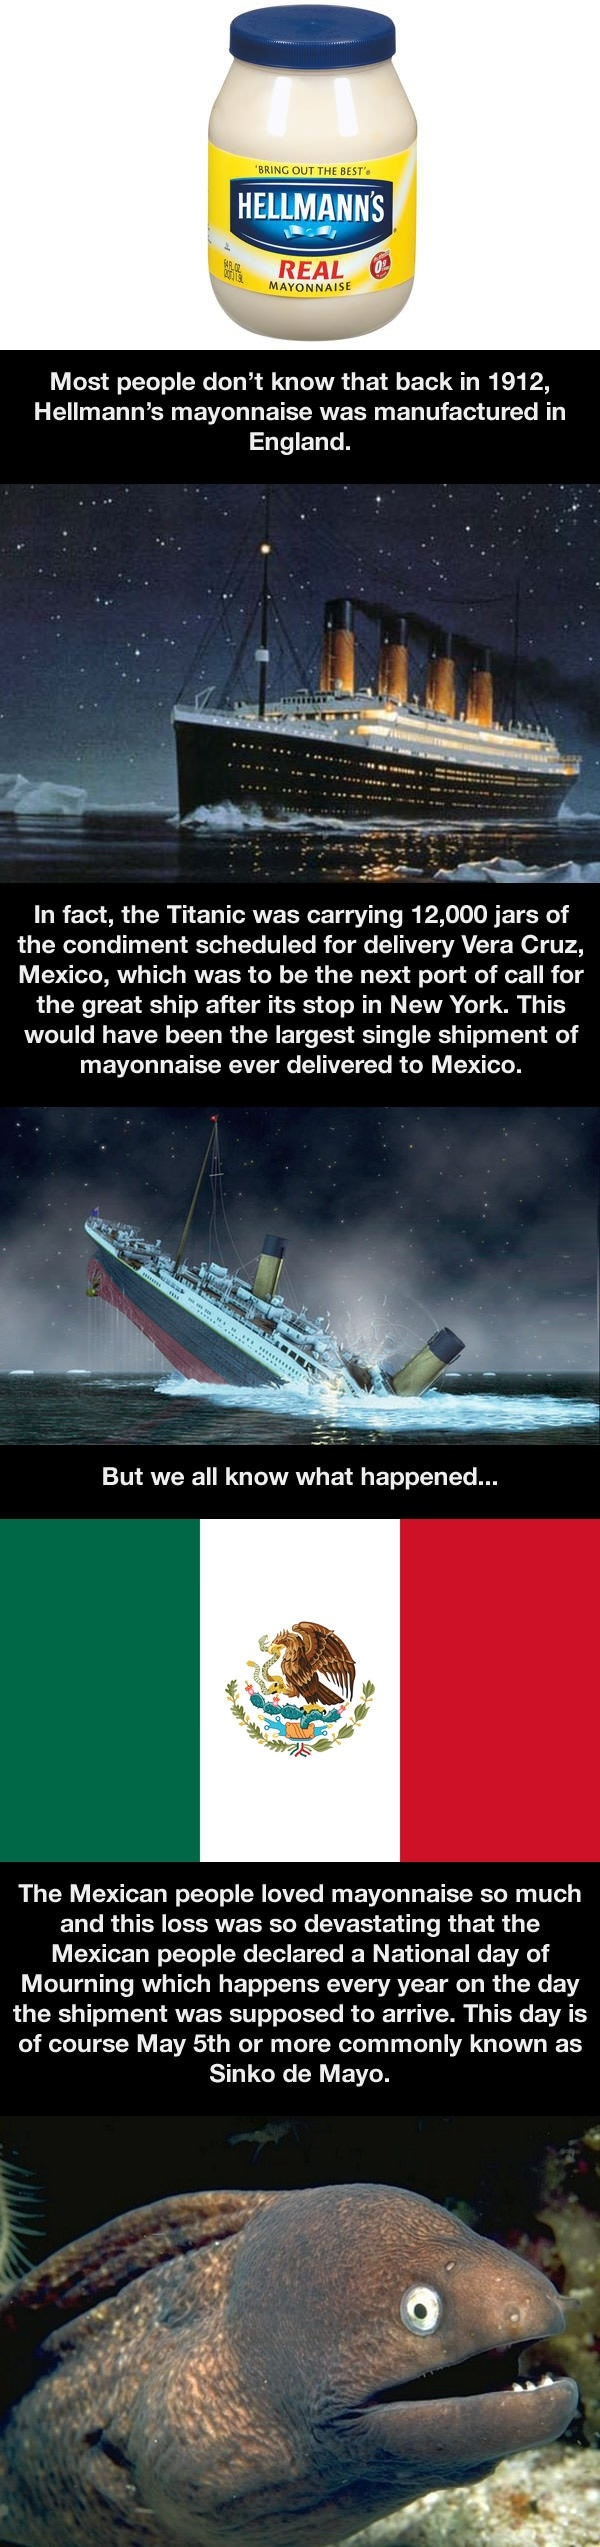 A fact about the Titanic